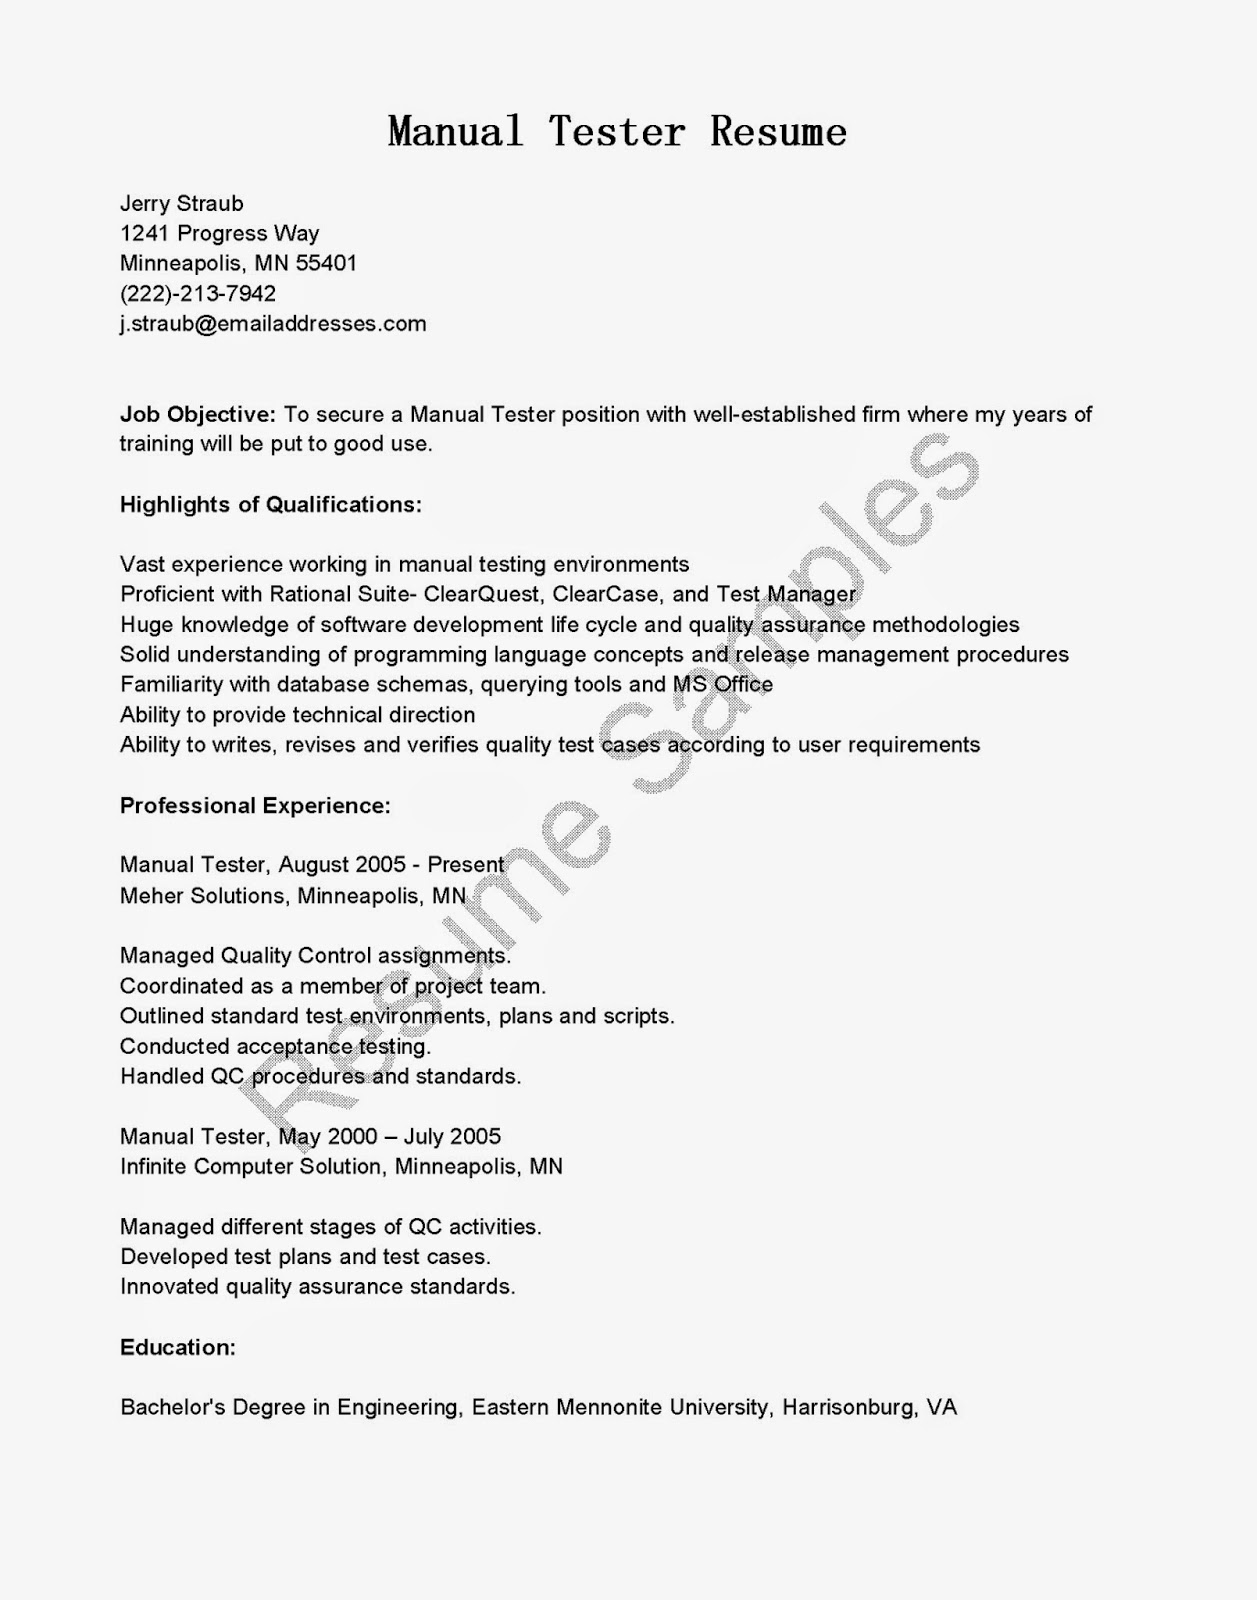 Qa Sample Resumes Resume Cover Letter For Qa With Software Tester  Manual%2BTester%2BResume